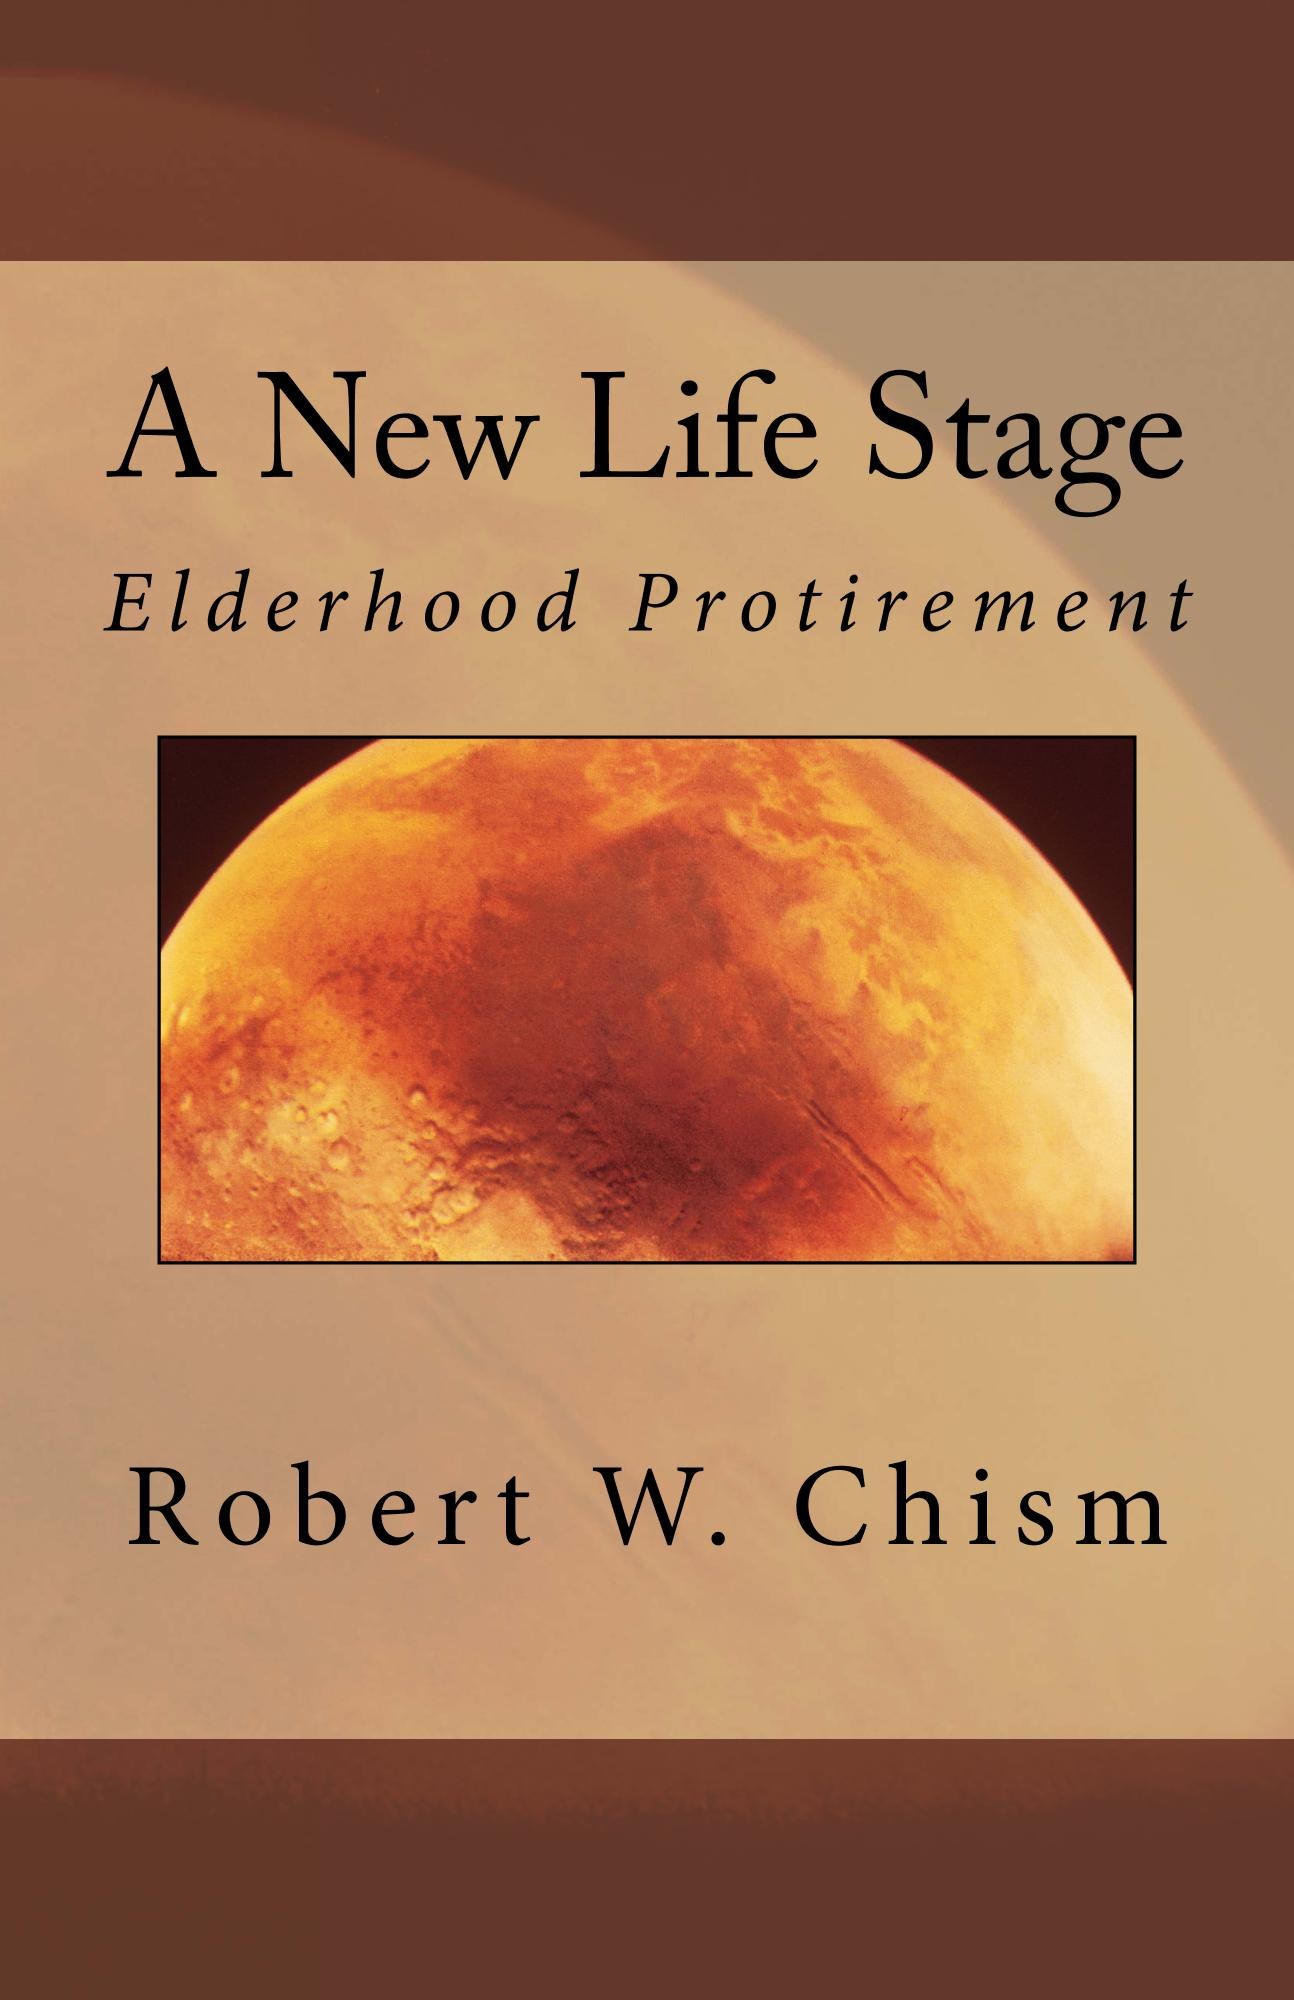 a_new_life_stage_cover_for_kindle